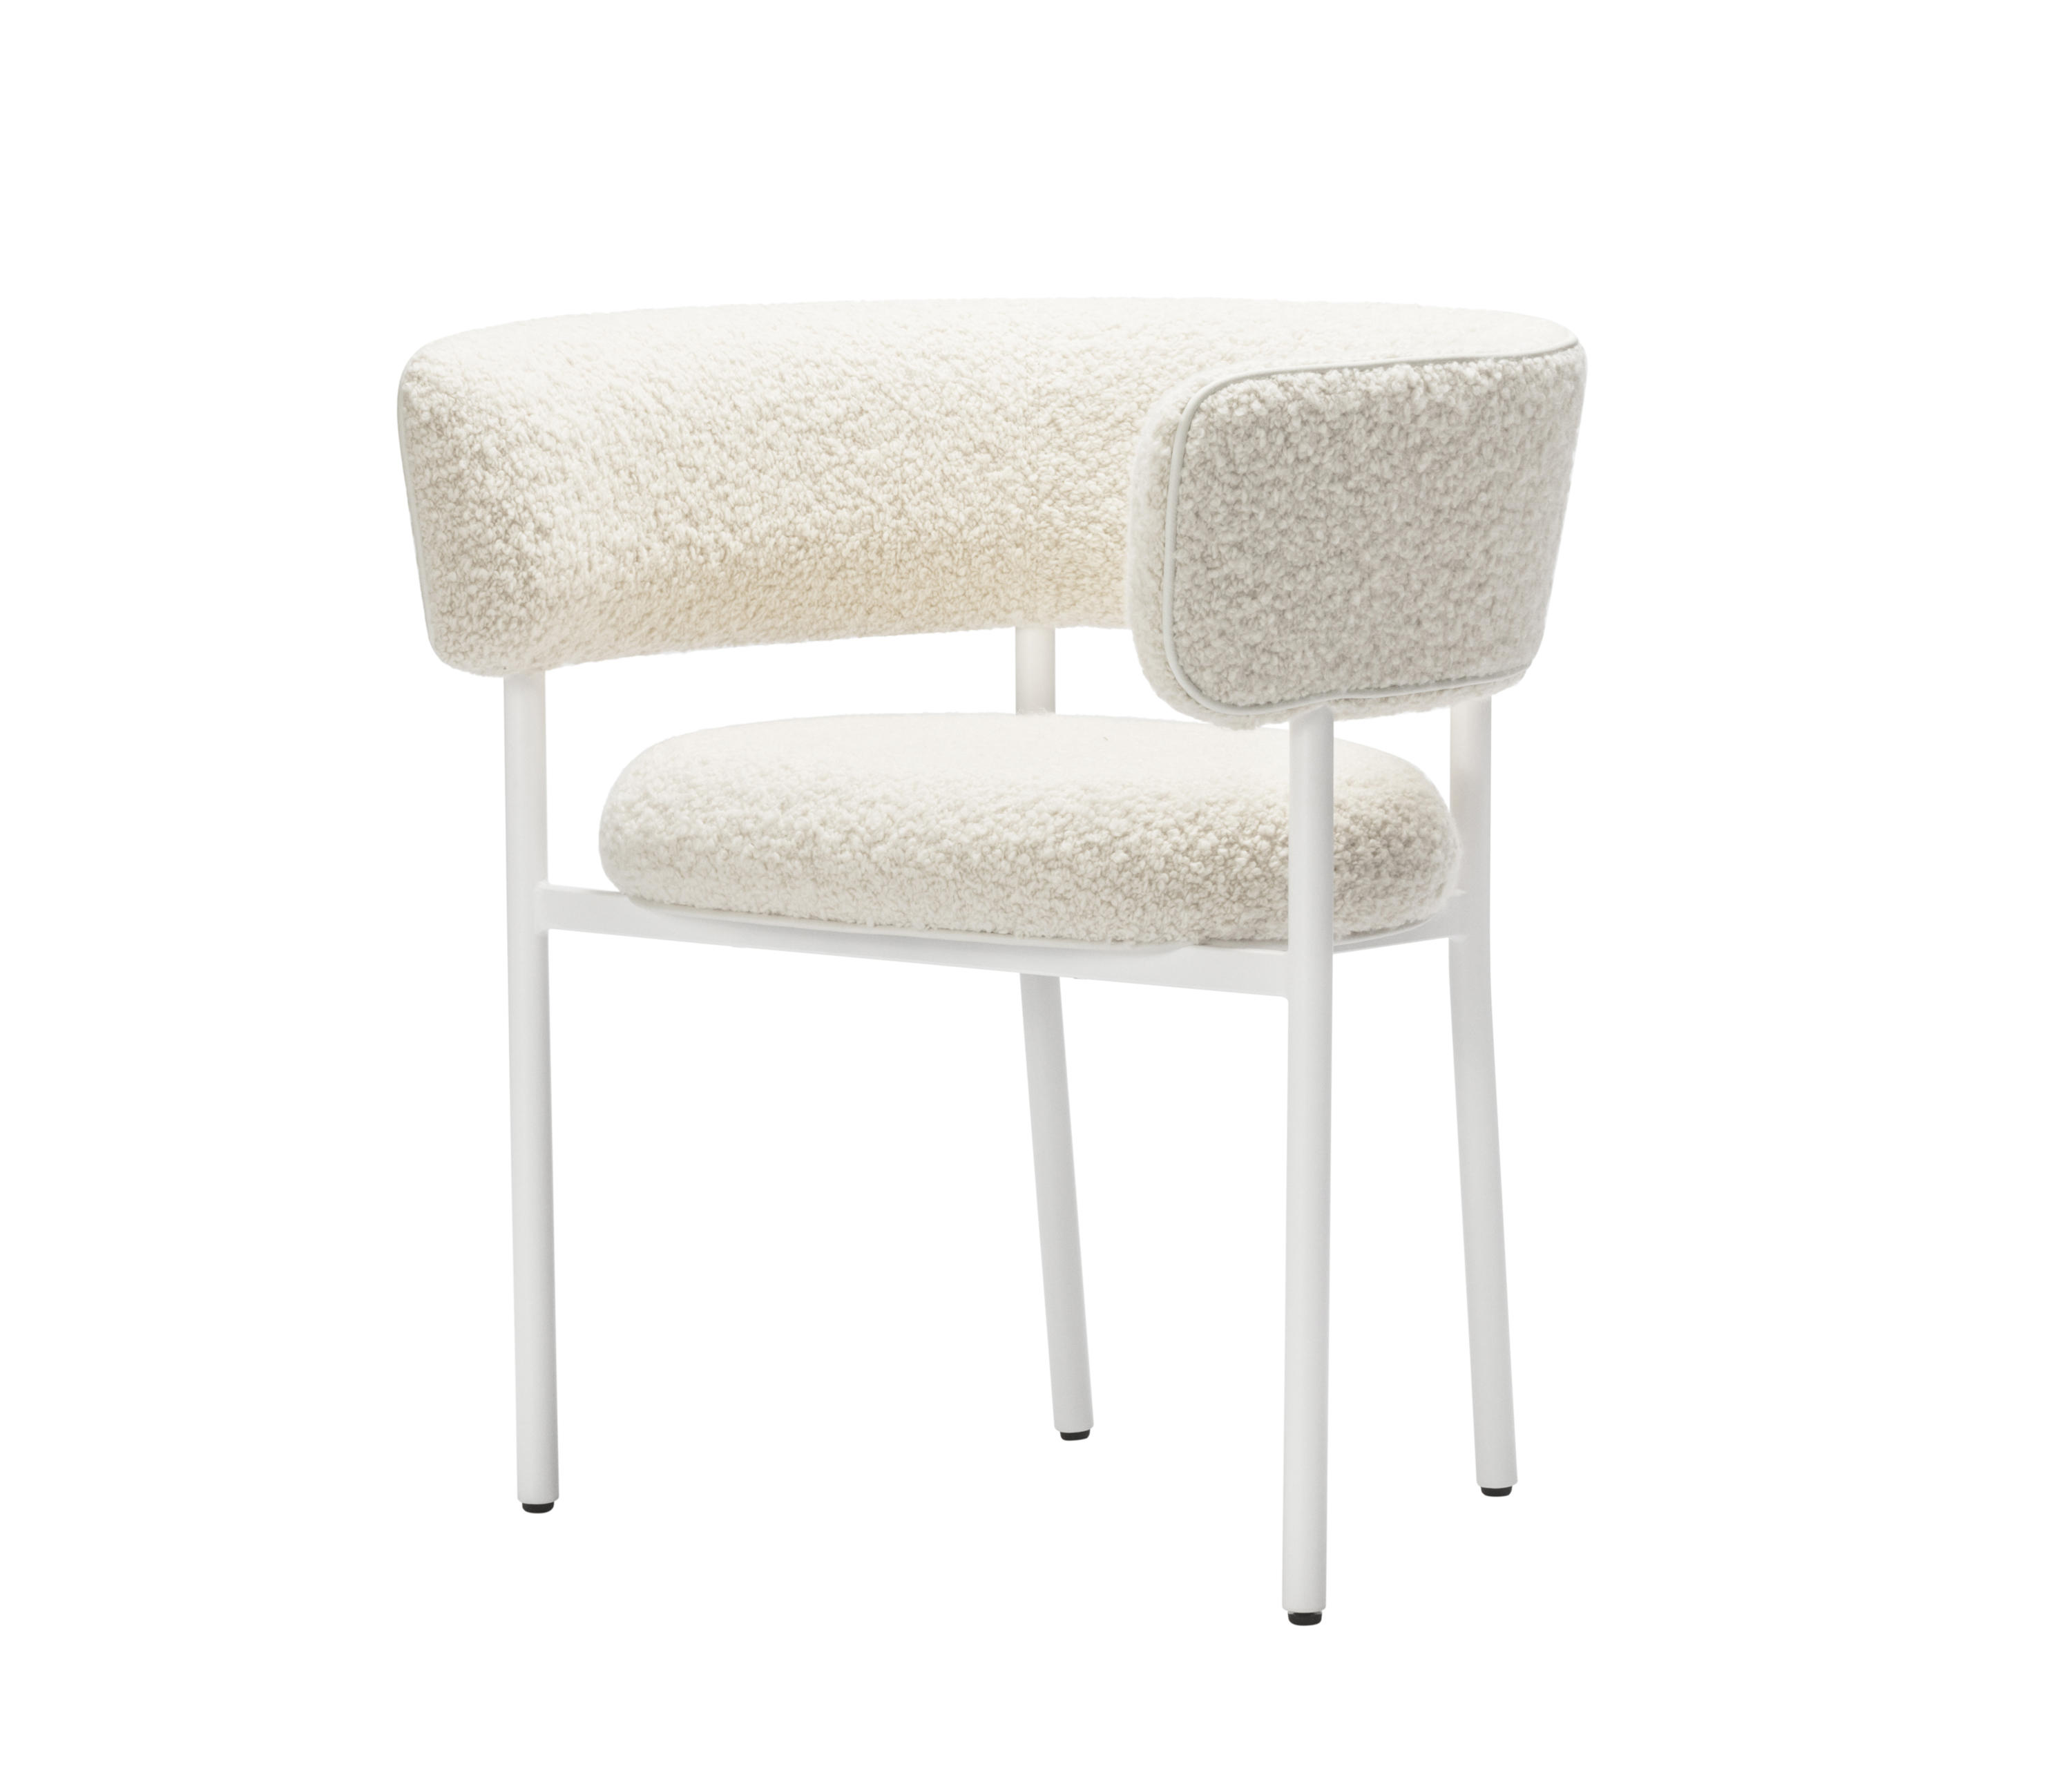 dining chair with armrest fisher price rainforest healthy care high font regular chairs from møbel